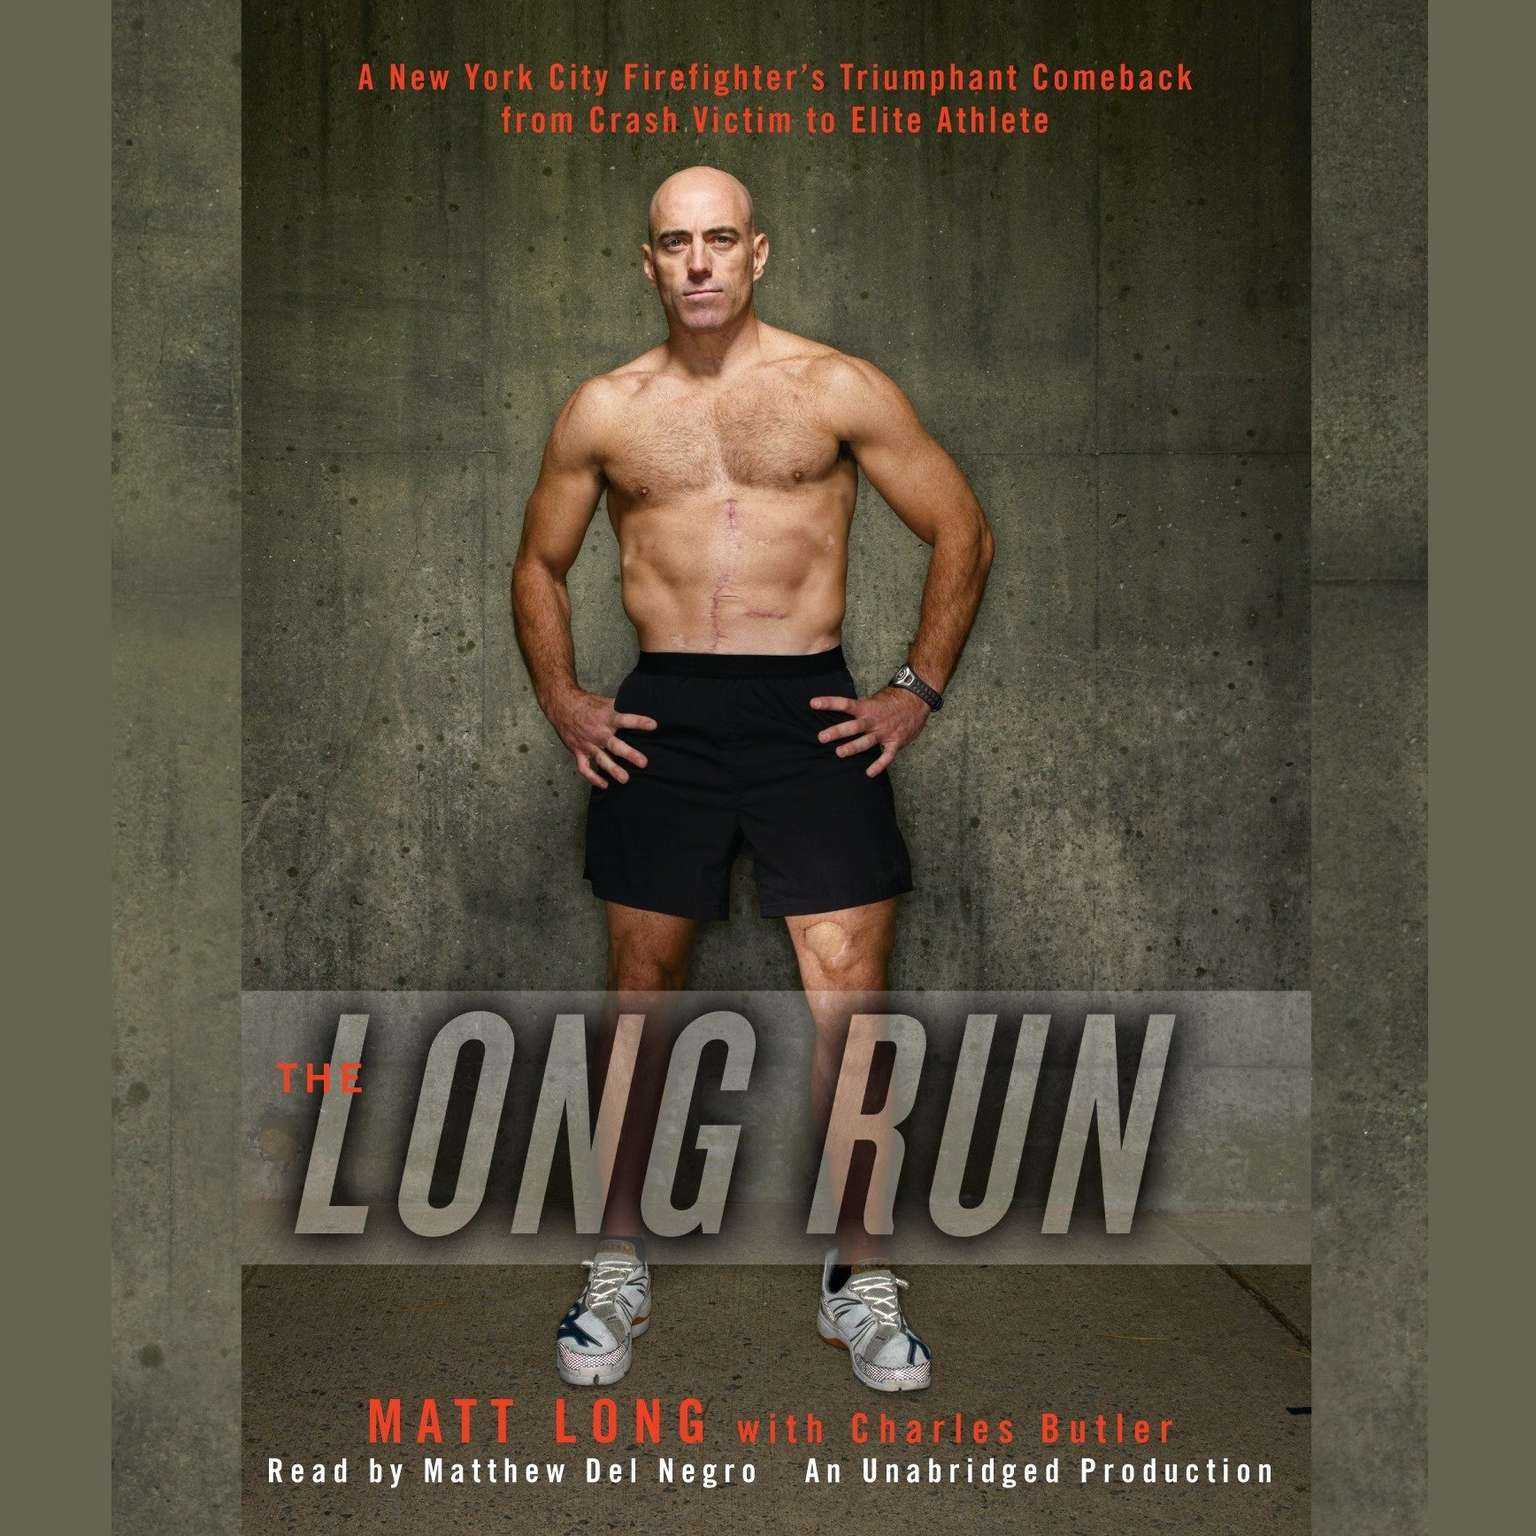 Printable The Long Run: A New York City Firefighter's Triumphant Comeback from Crash Victim to Elite Athlete Audiobook Cover Art